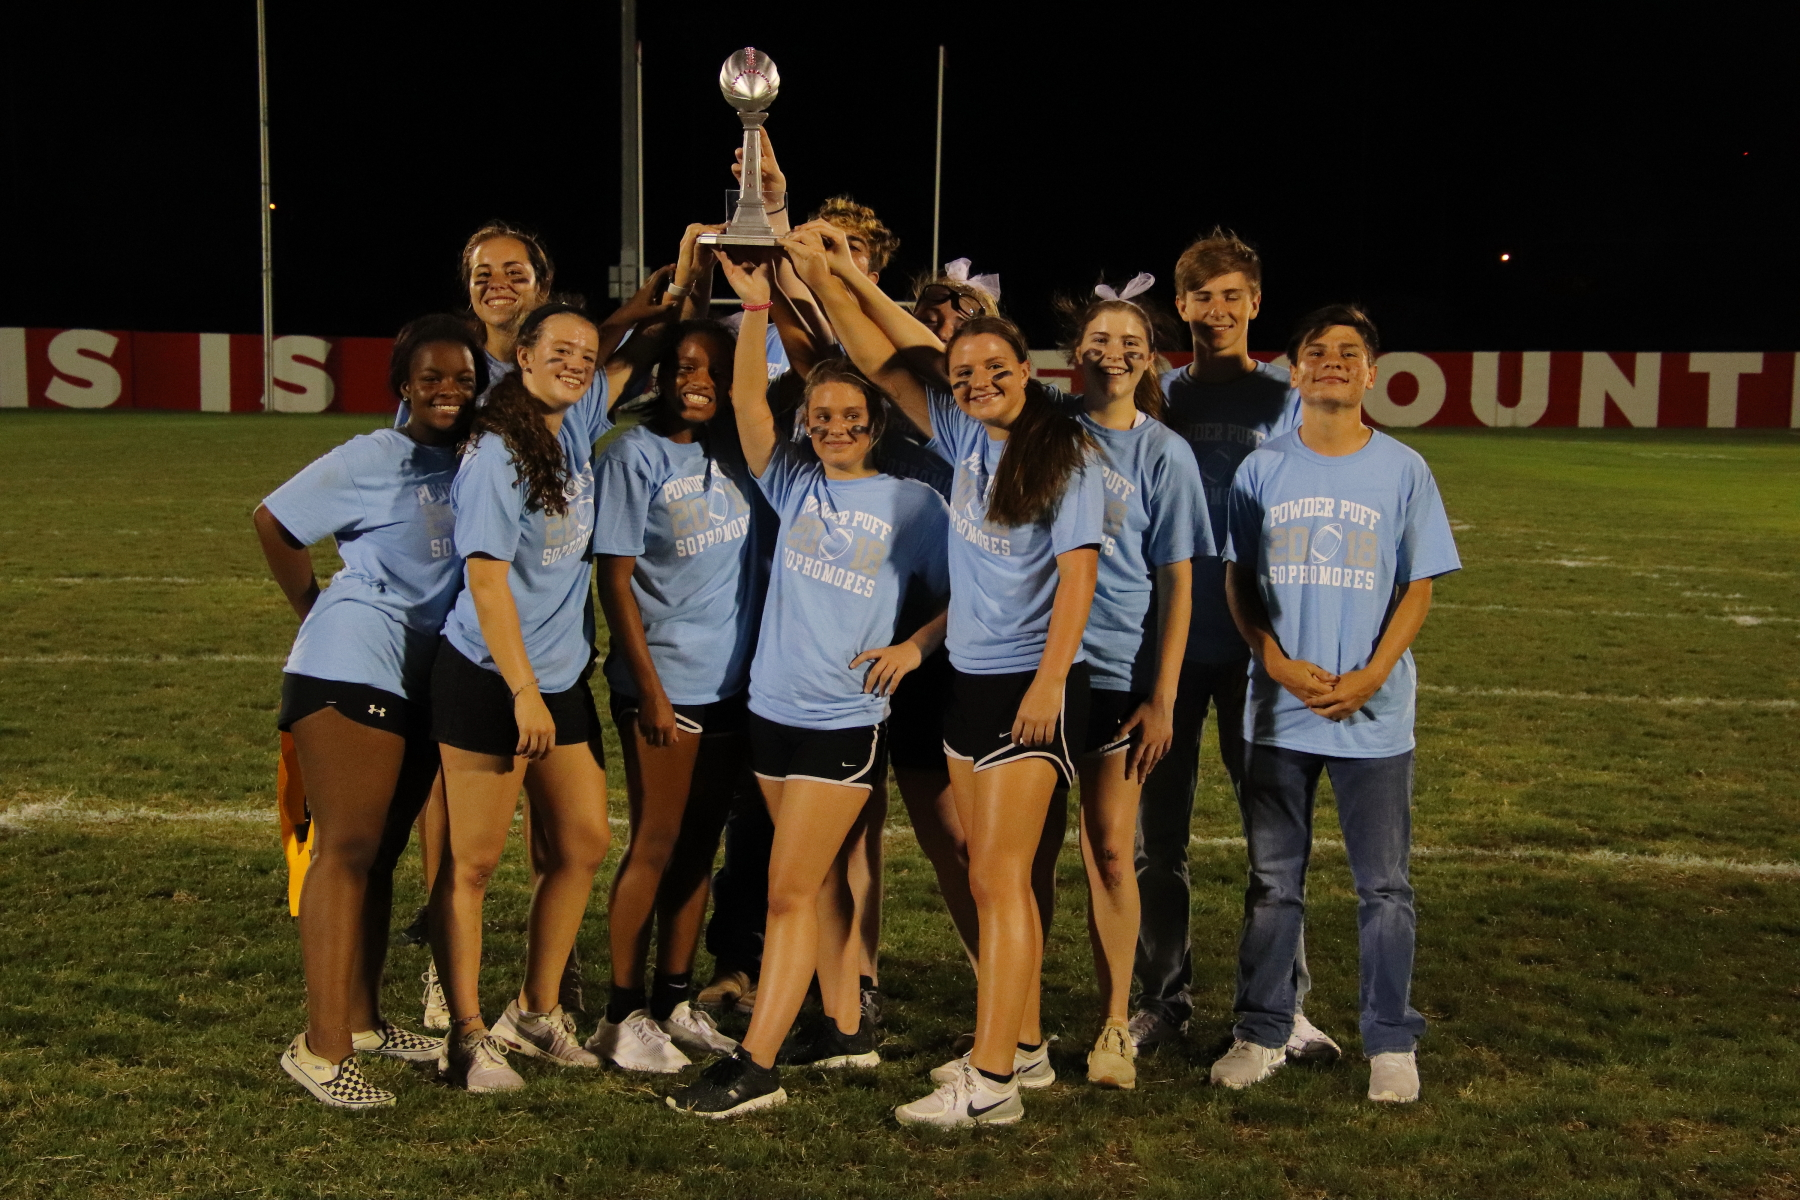 Powder Puff Football - SOPHS WIN!